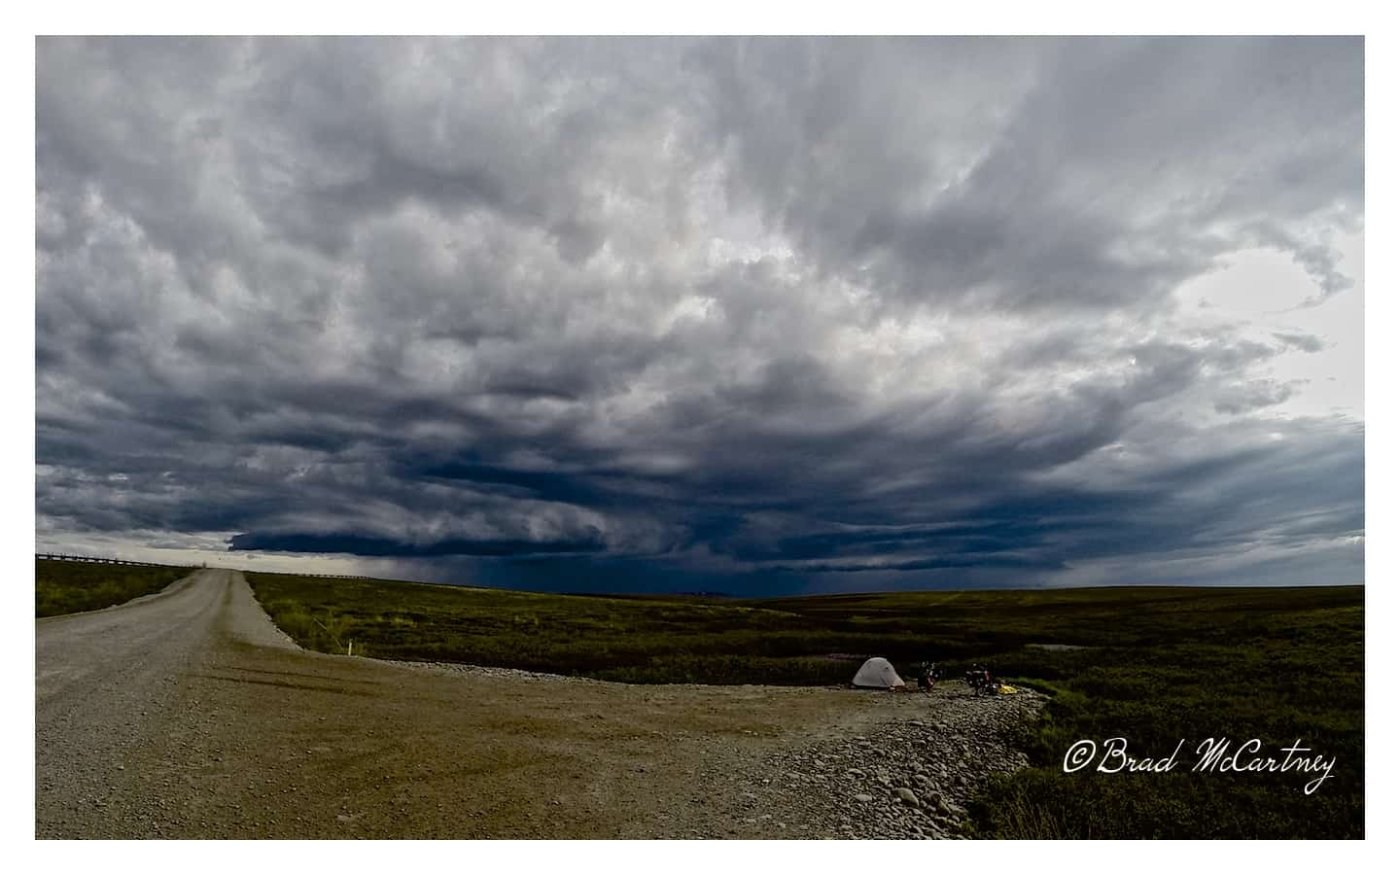 Waiting out the wind and storm before making a midnight cycle along the Dalton Hwy